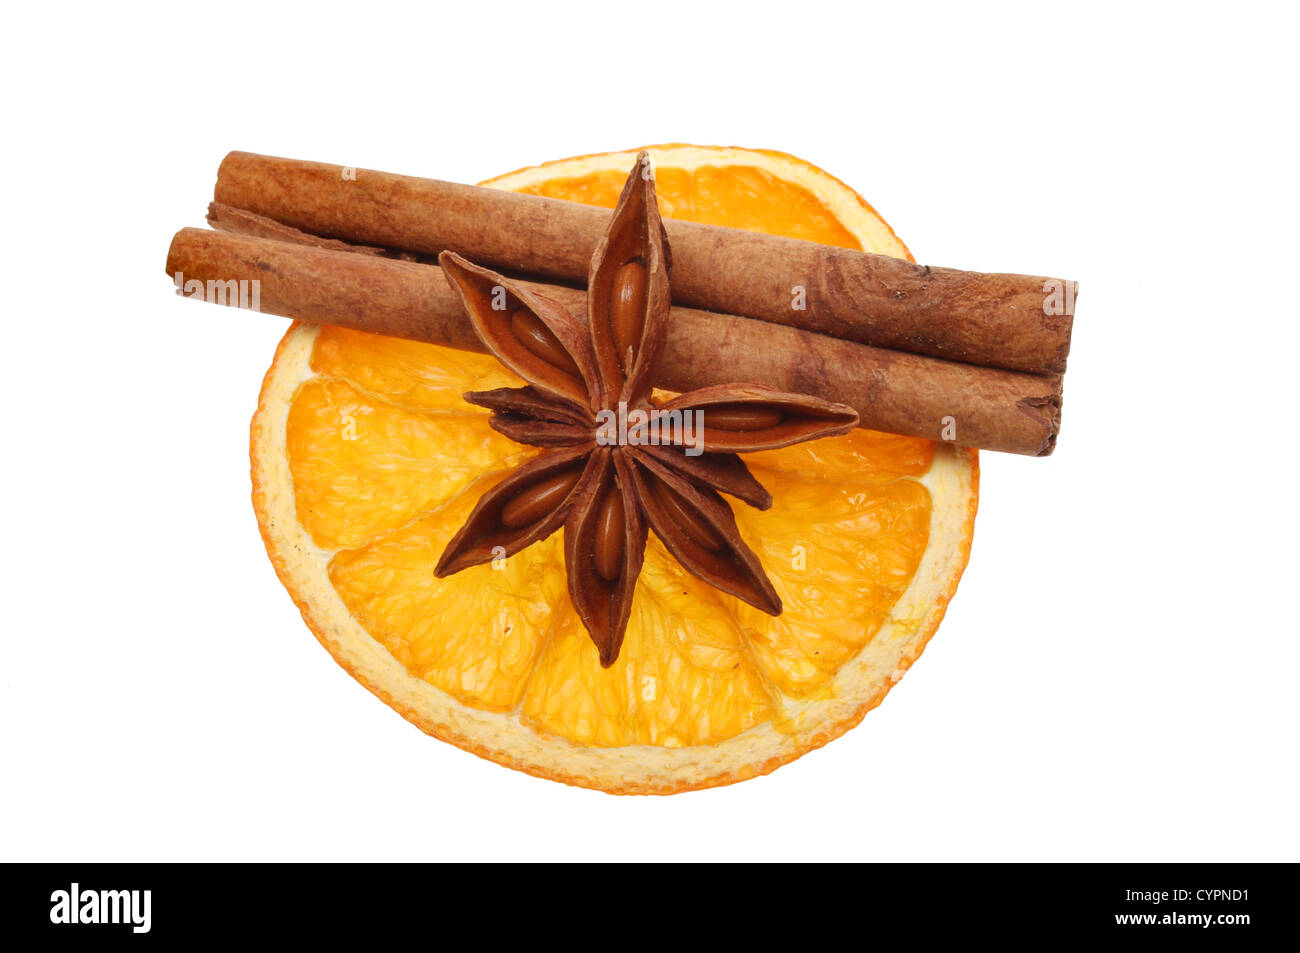 Christmas associated flavors of dried orange, with cinnamon and star anise laid on top isolated against white - Stock Image